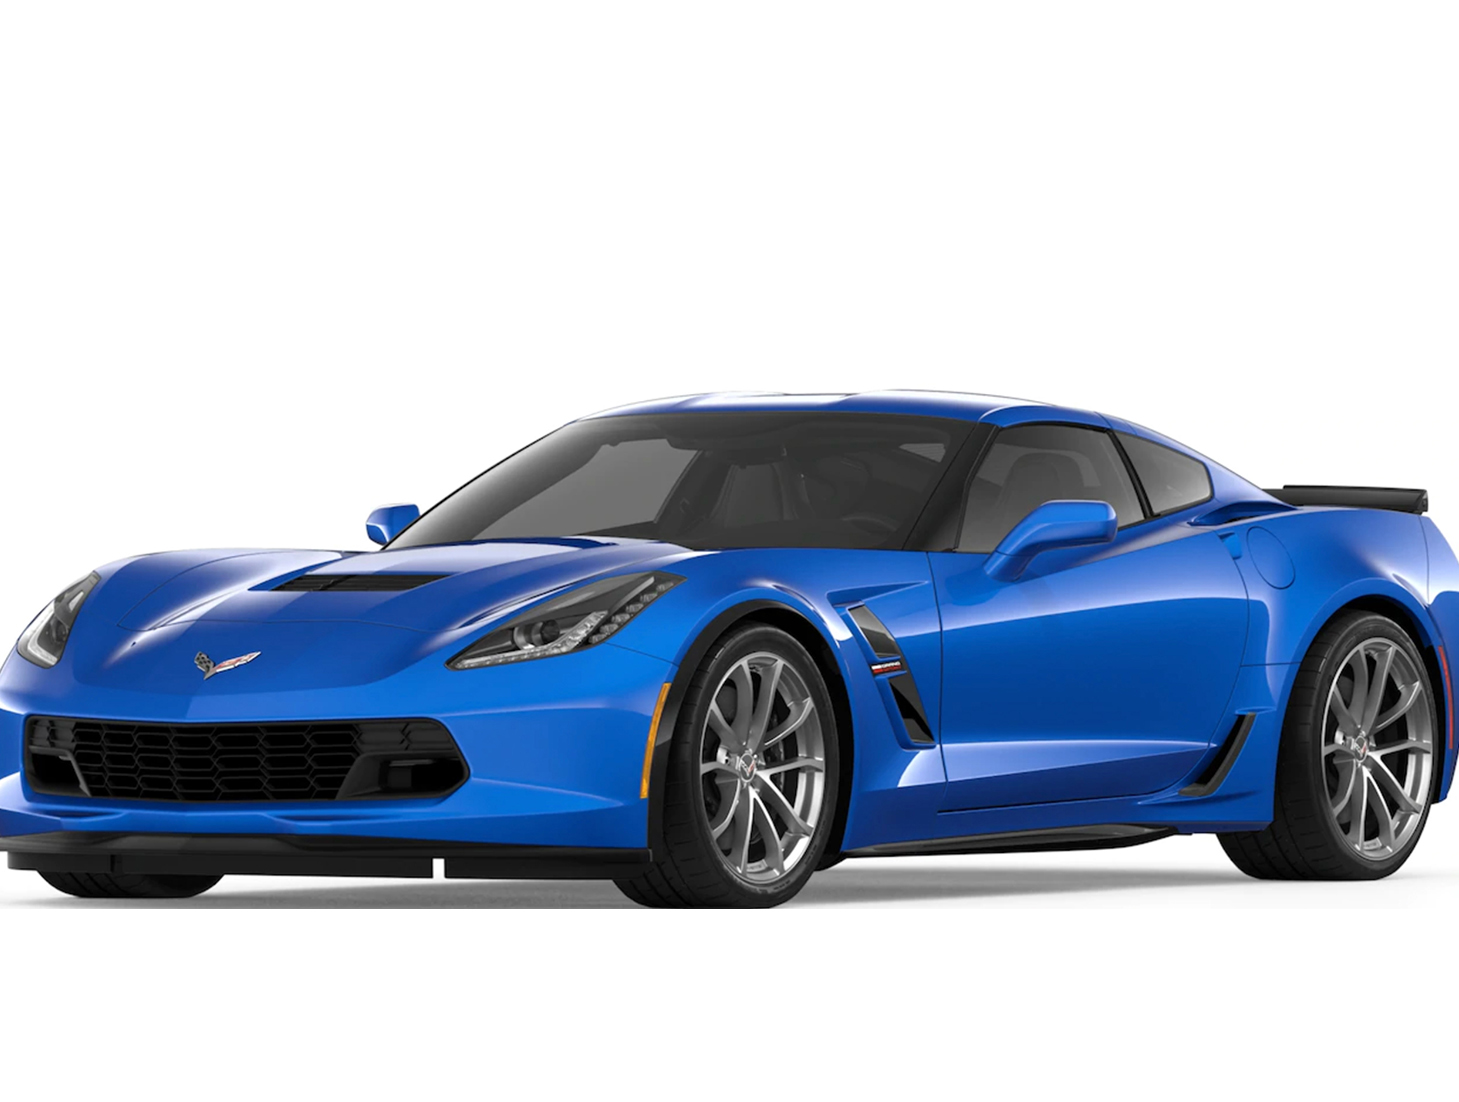 7th heaven: ranking the seven best C7 configurations